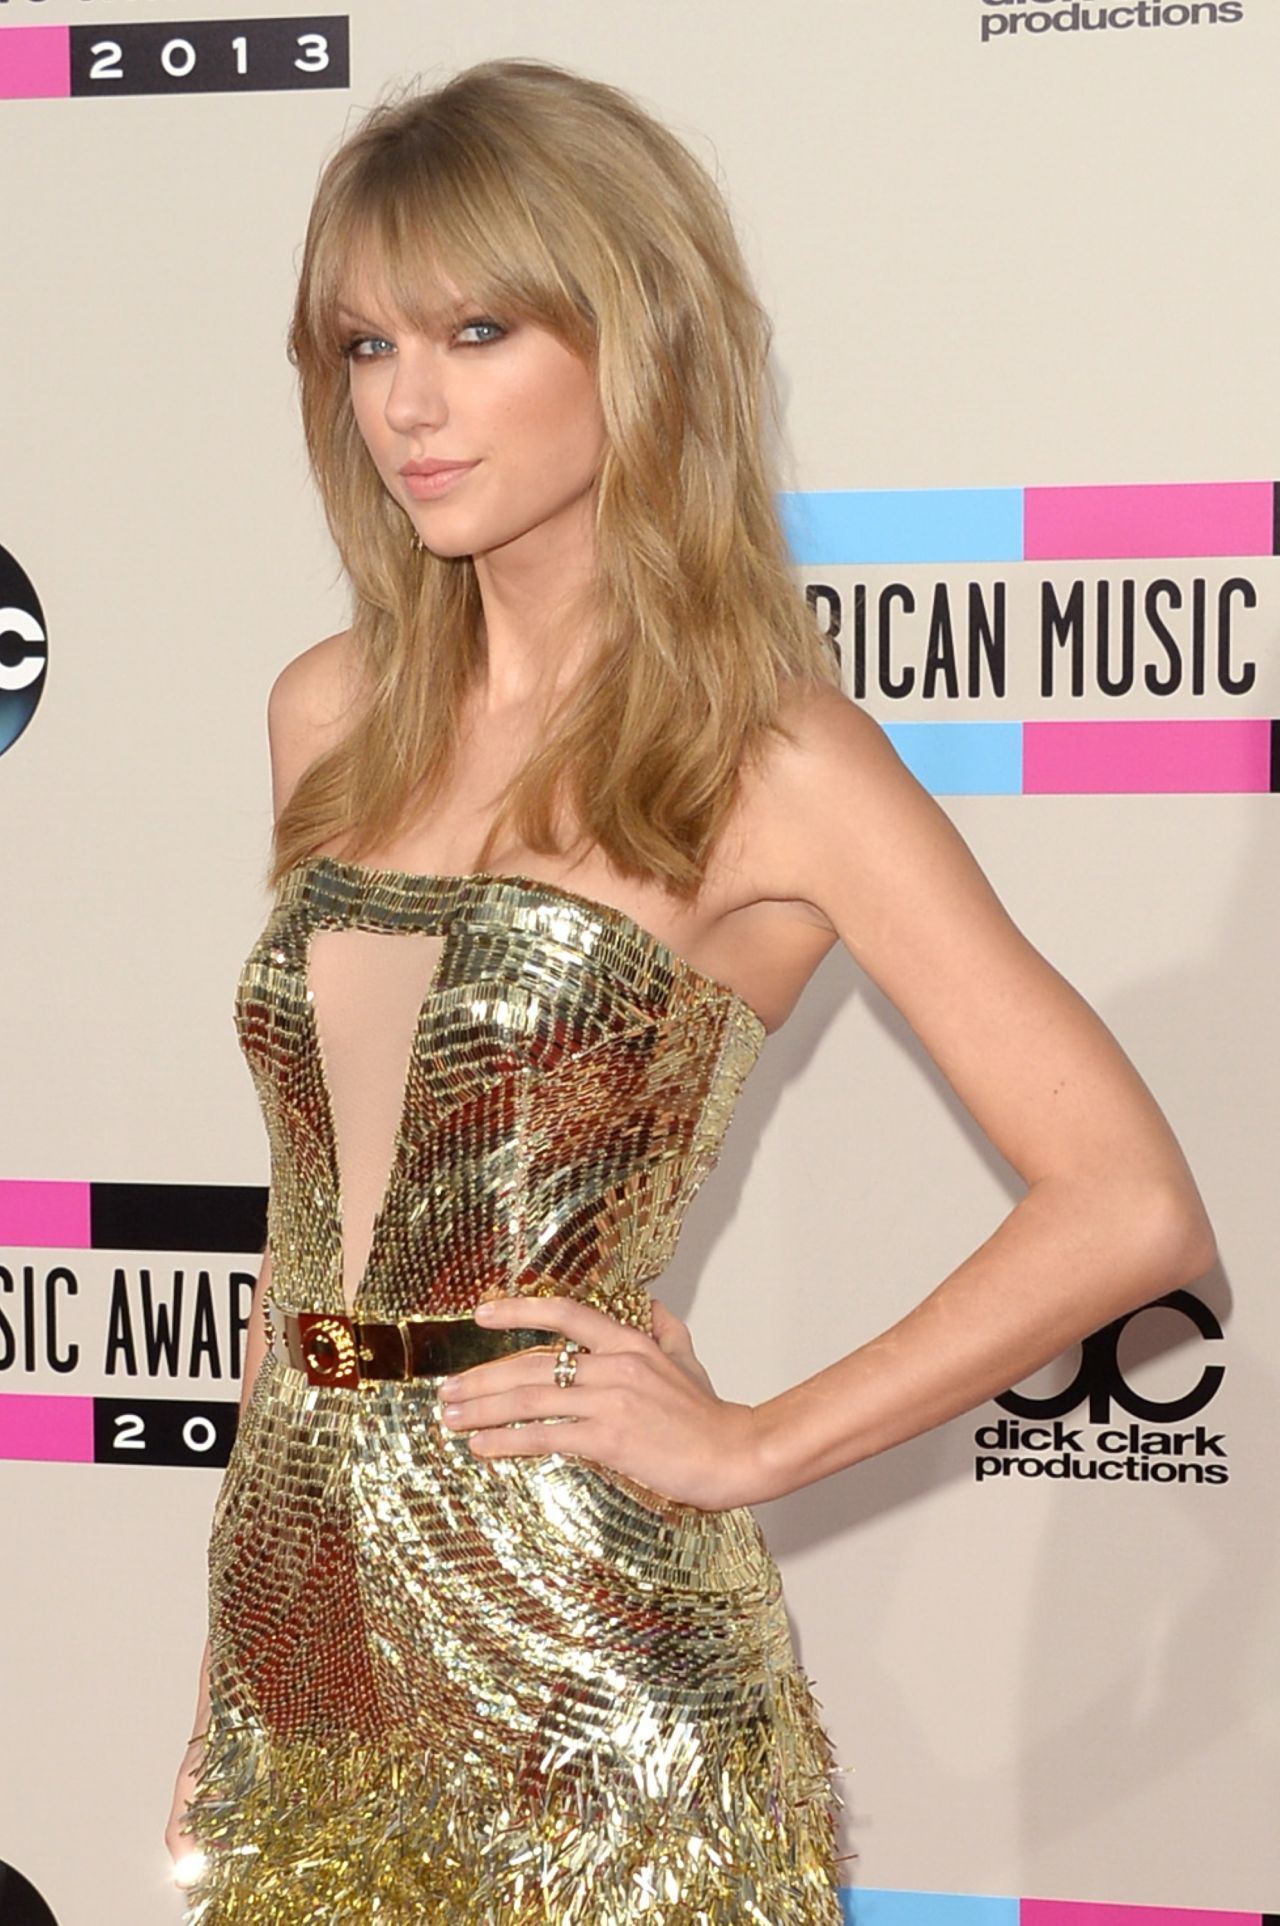 Taylor Swift Looks Hot on Red Carpet - 2013 American Music Awards in Los Angeles • CelebMafia